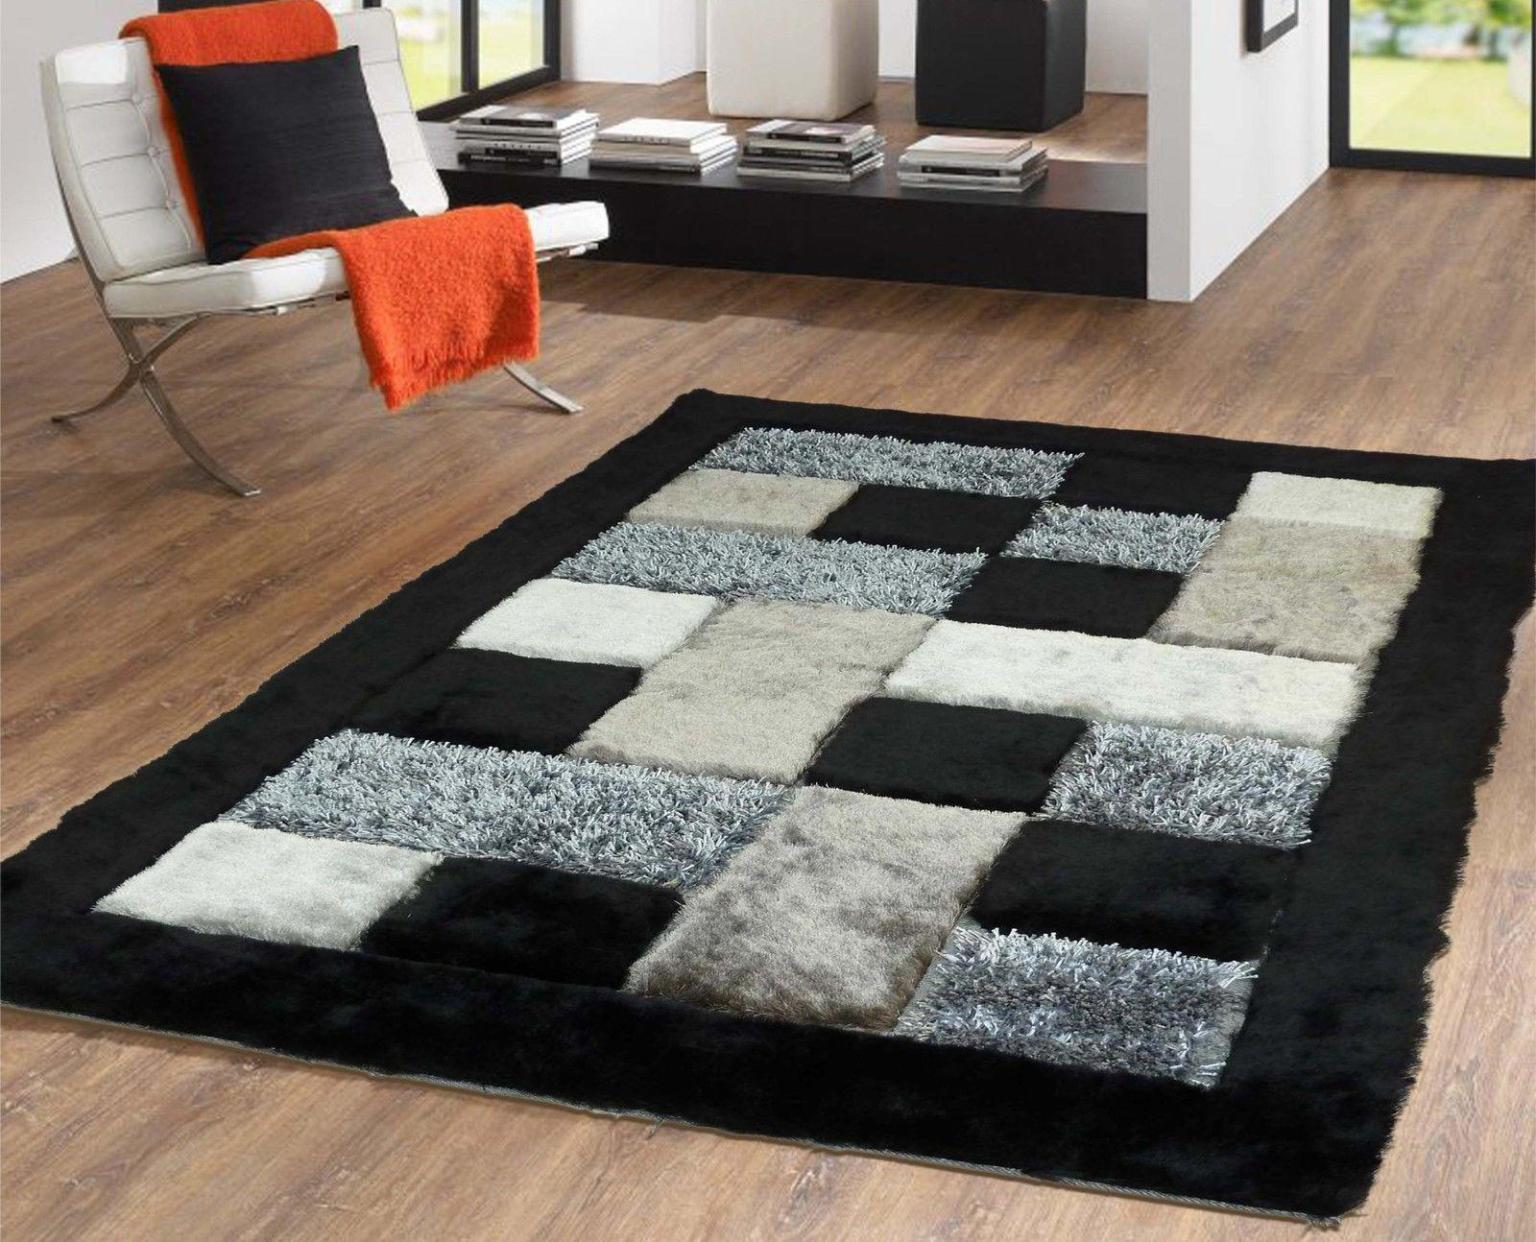 Image of: Area Rug Sizes Guide